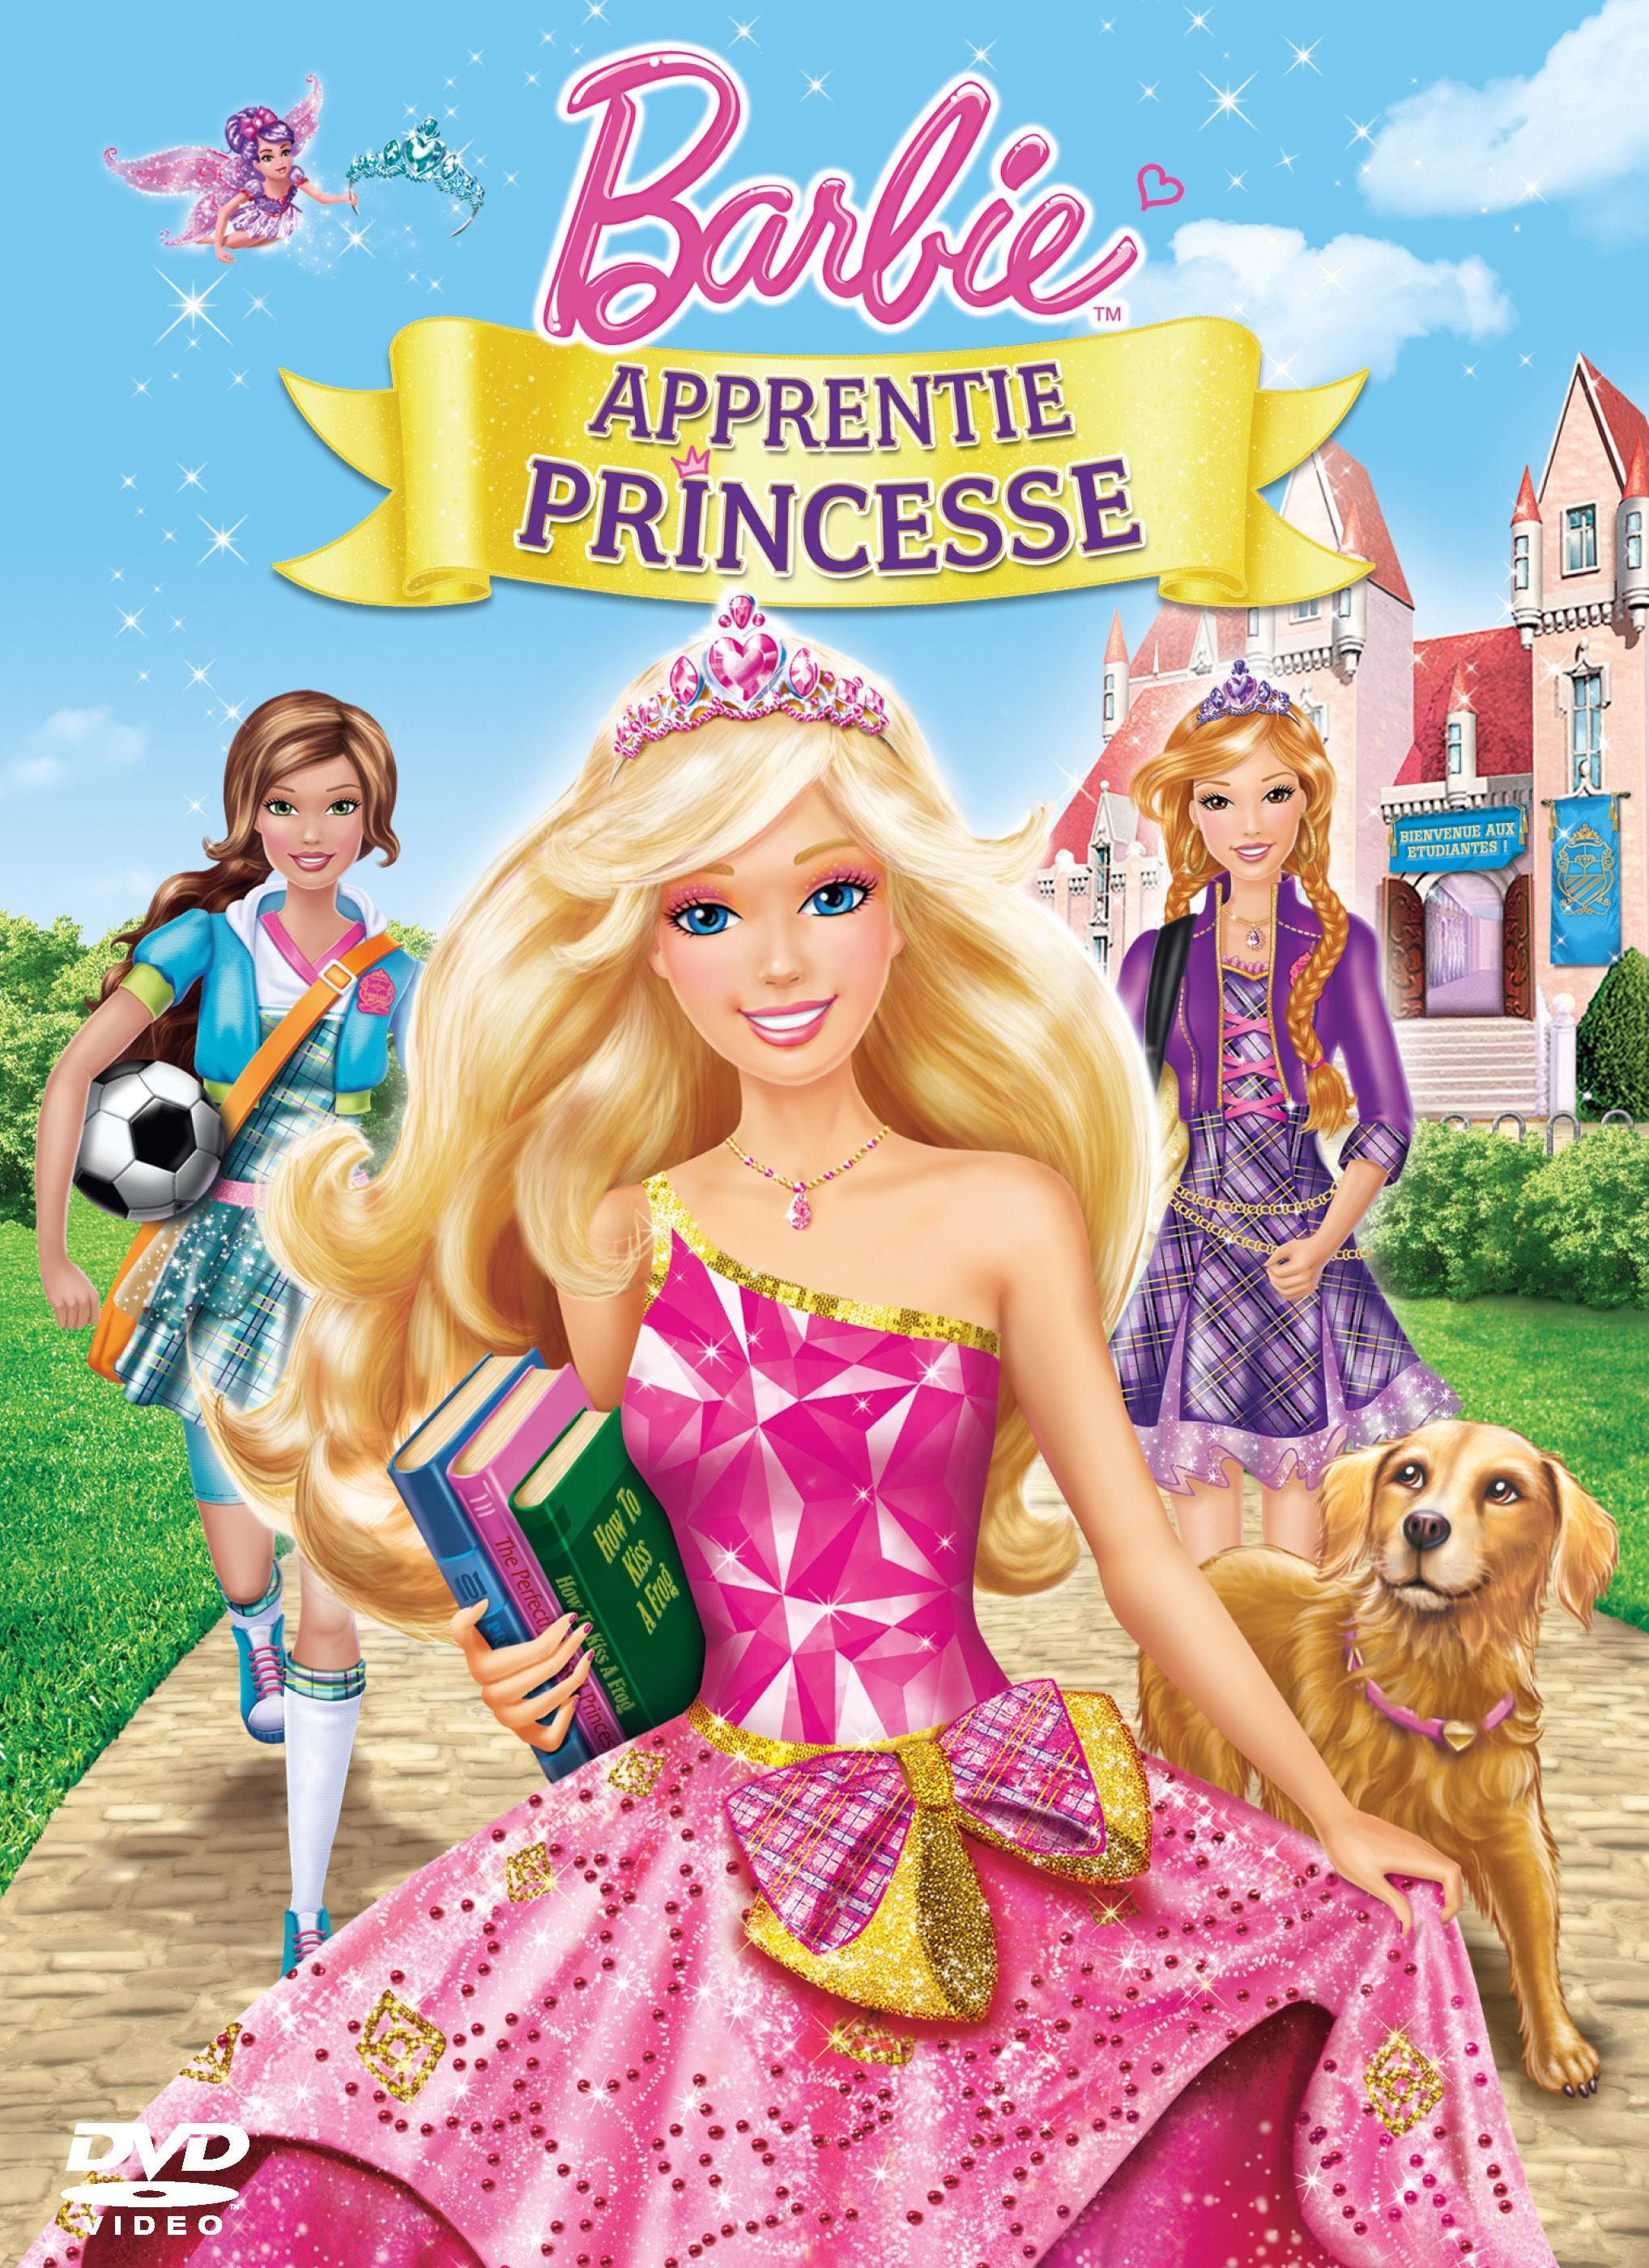 barbie apprentie princesse streaming